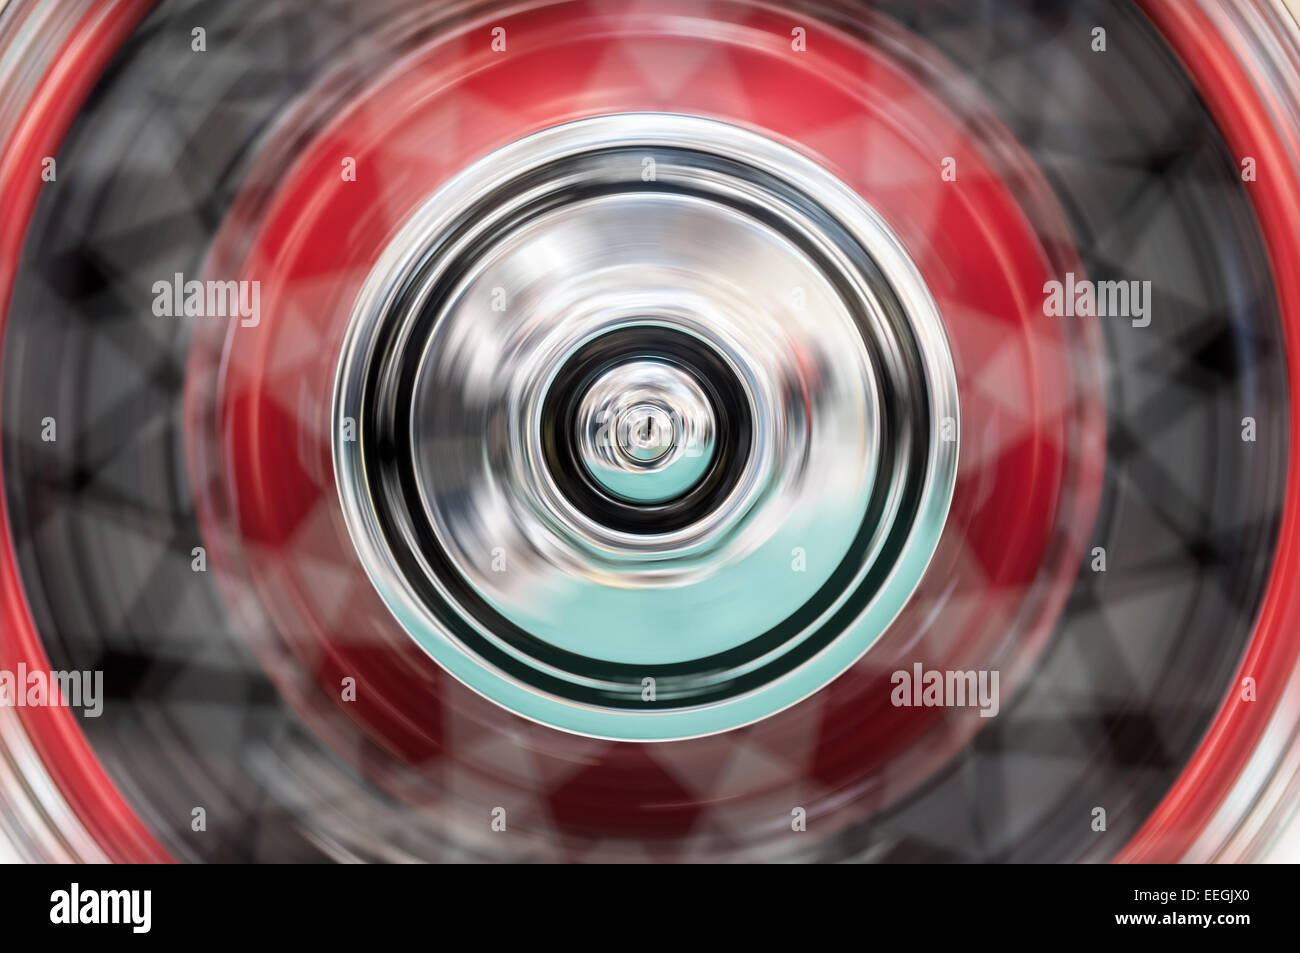 Fast spinning wheel of a car. Motion blur and fast speed. - Stock Image